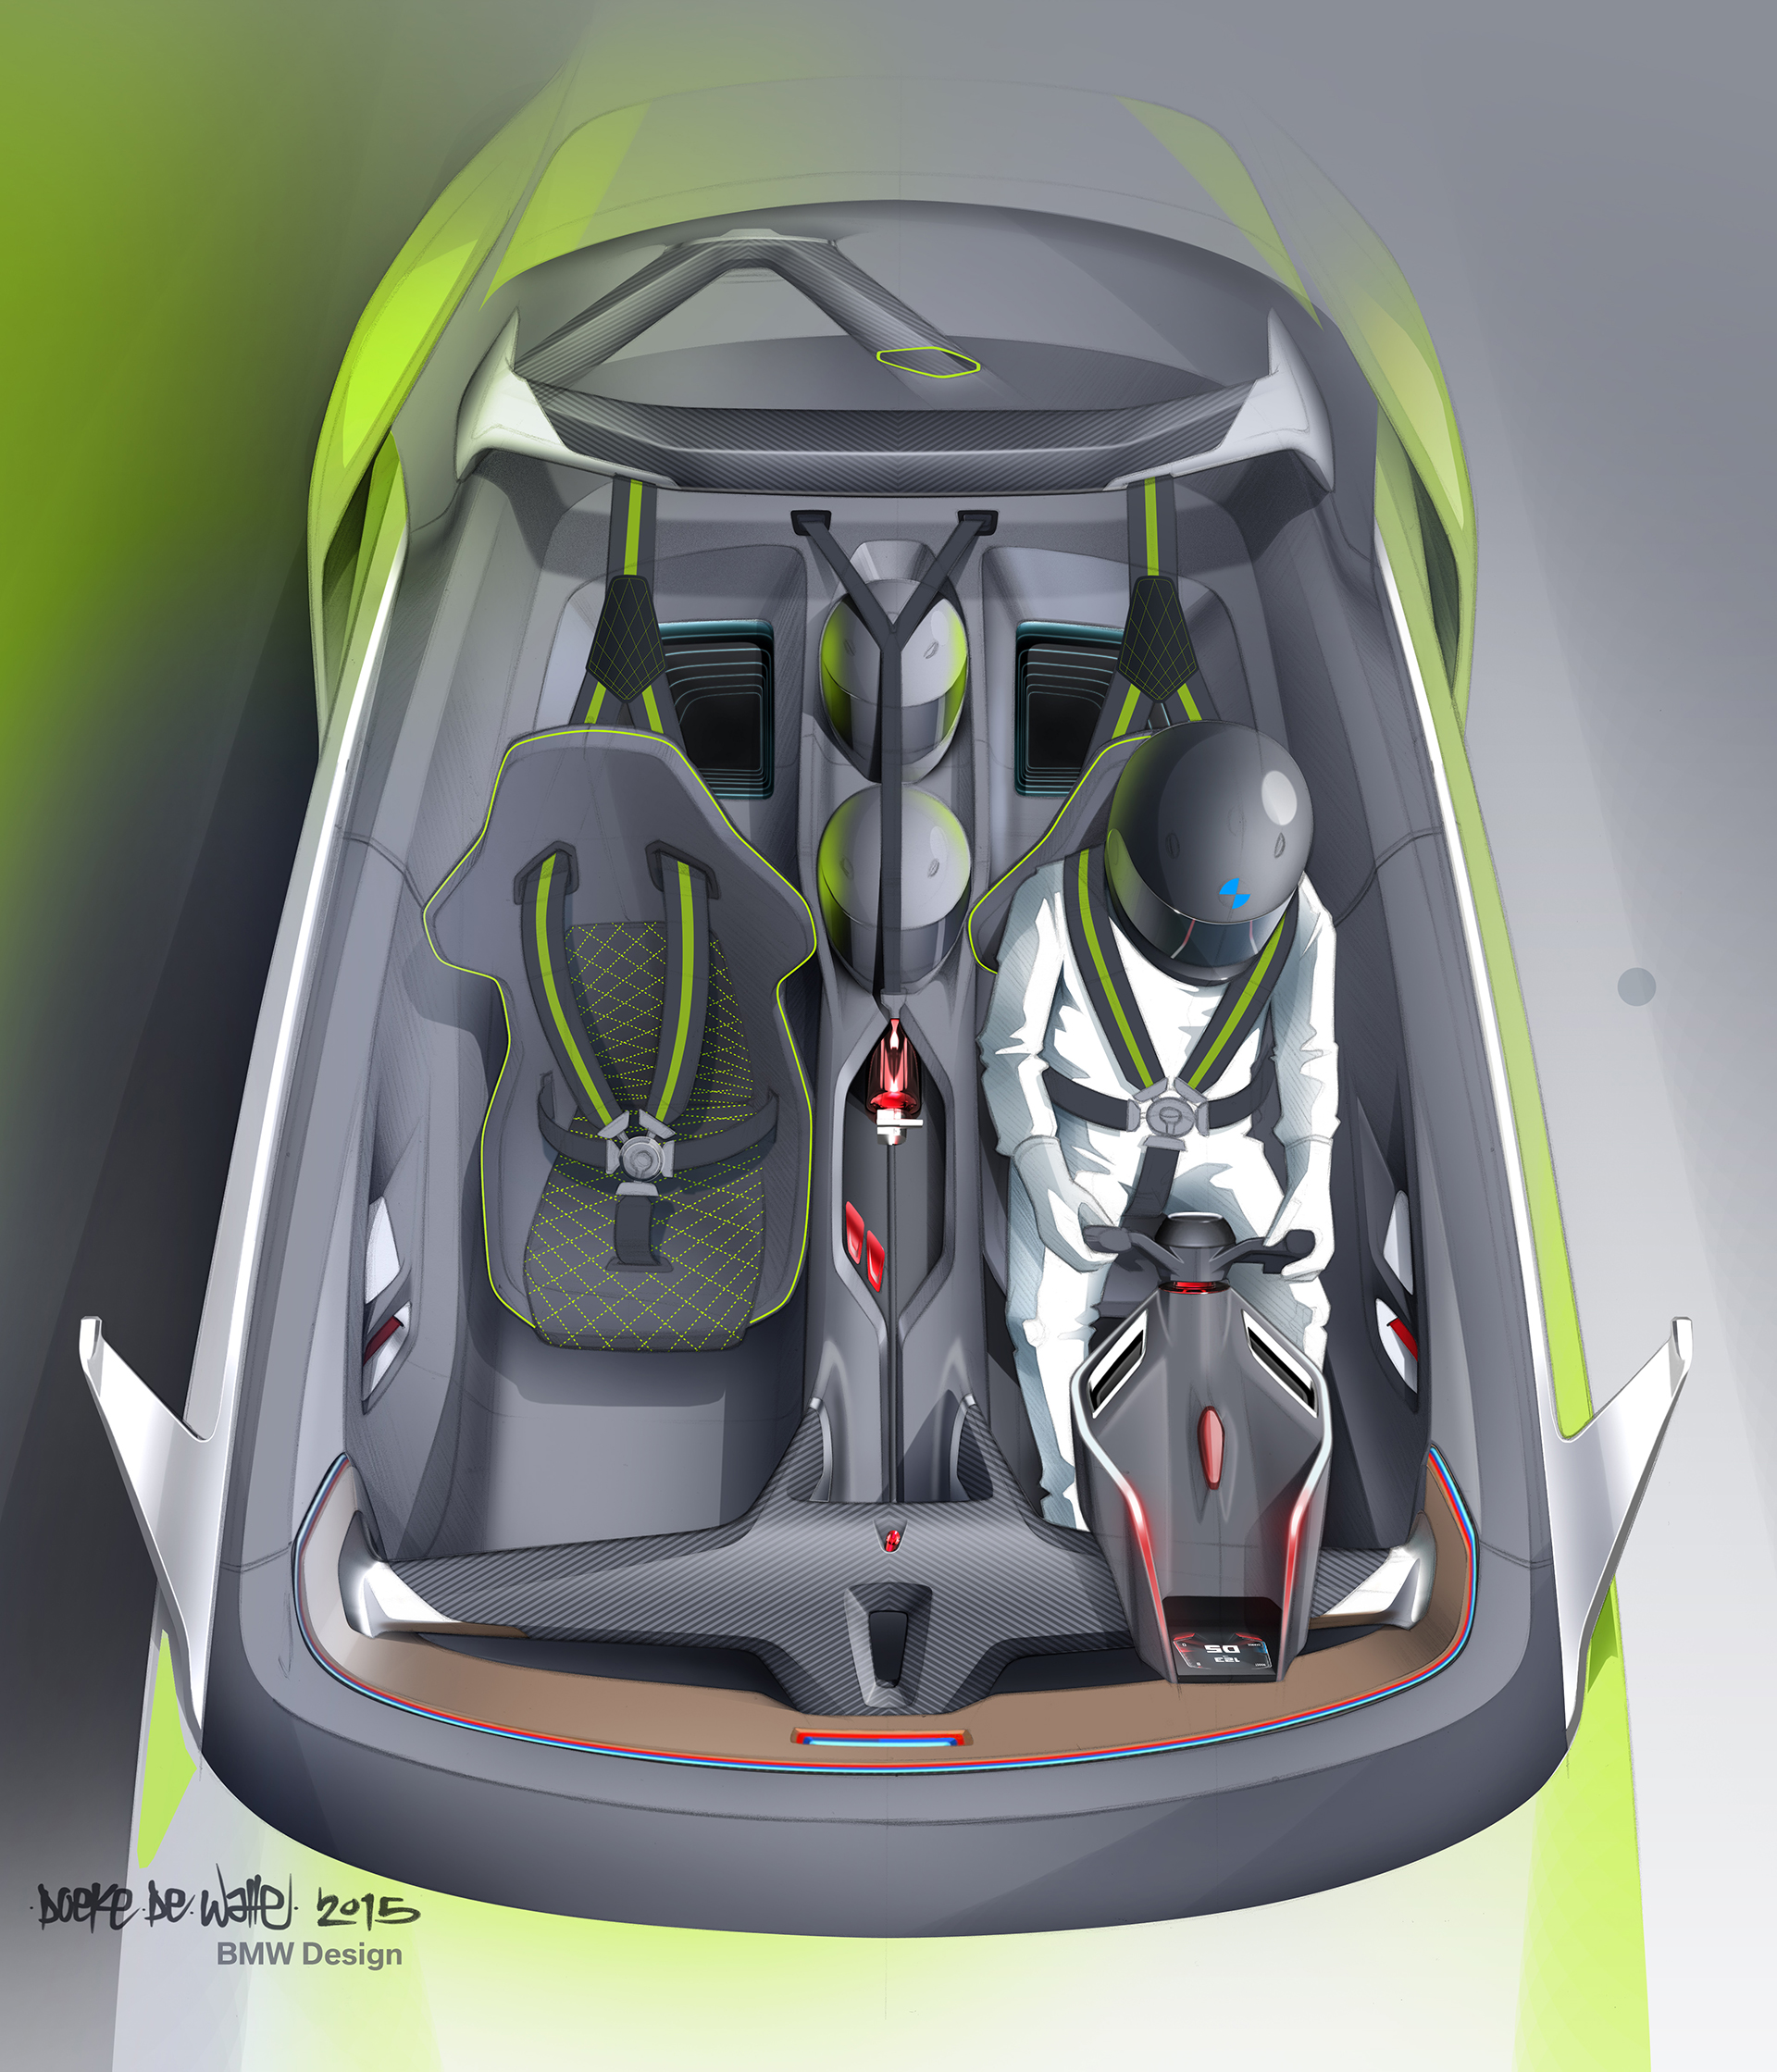 BMW 3.0 CSL Hommage - sketch inside interior